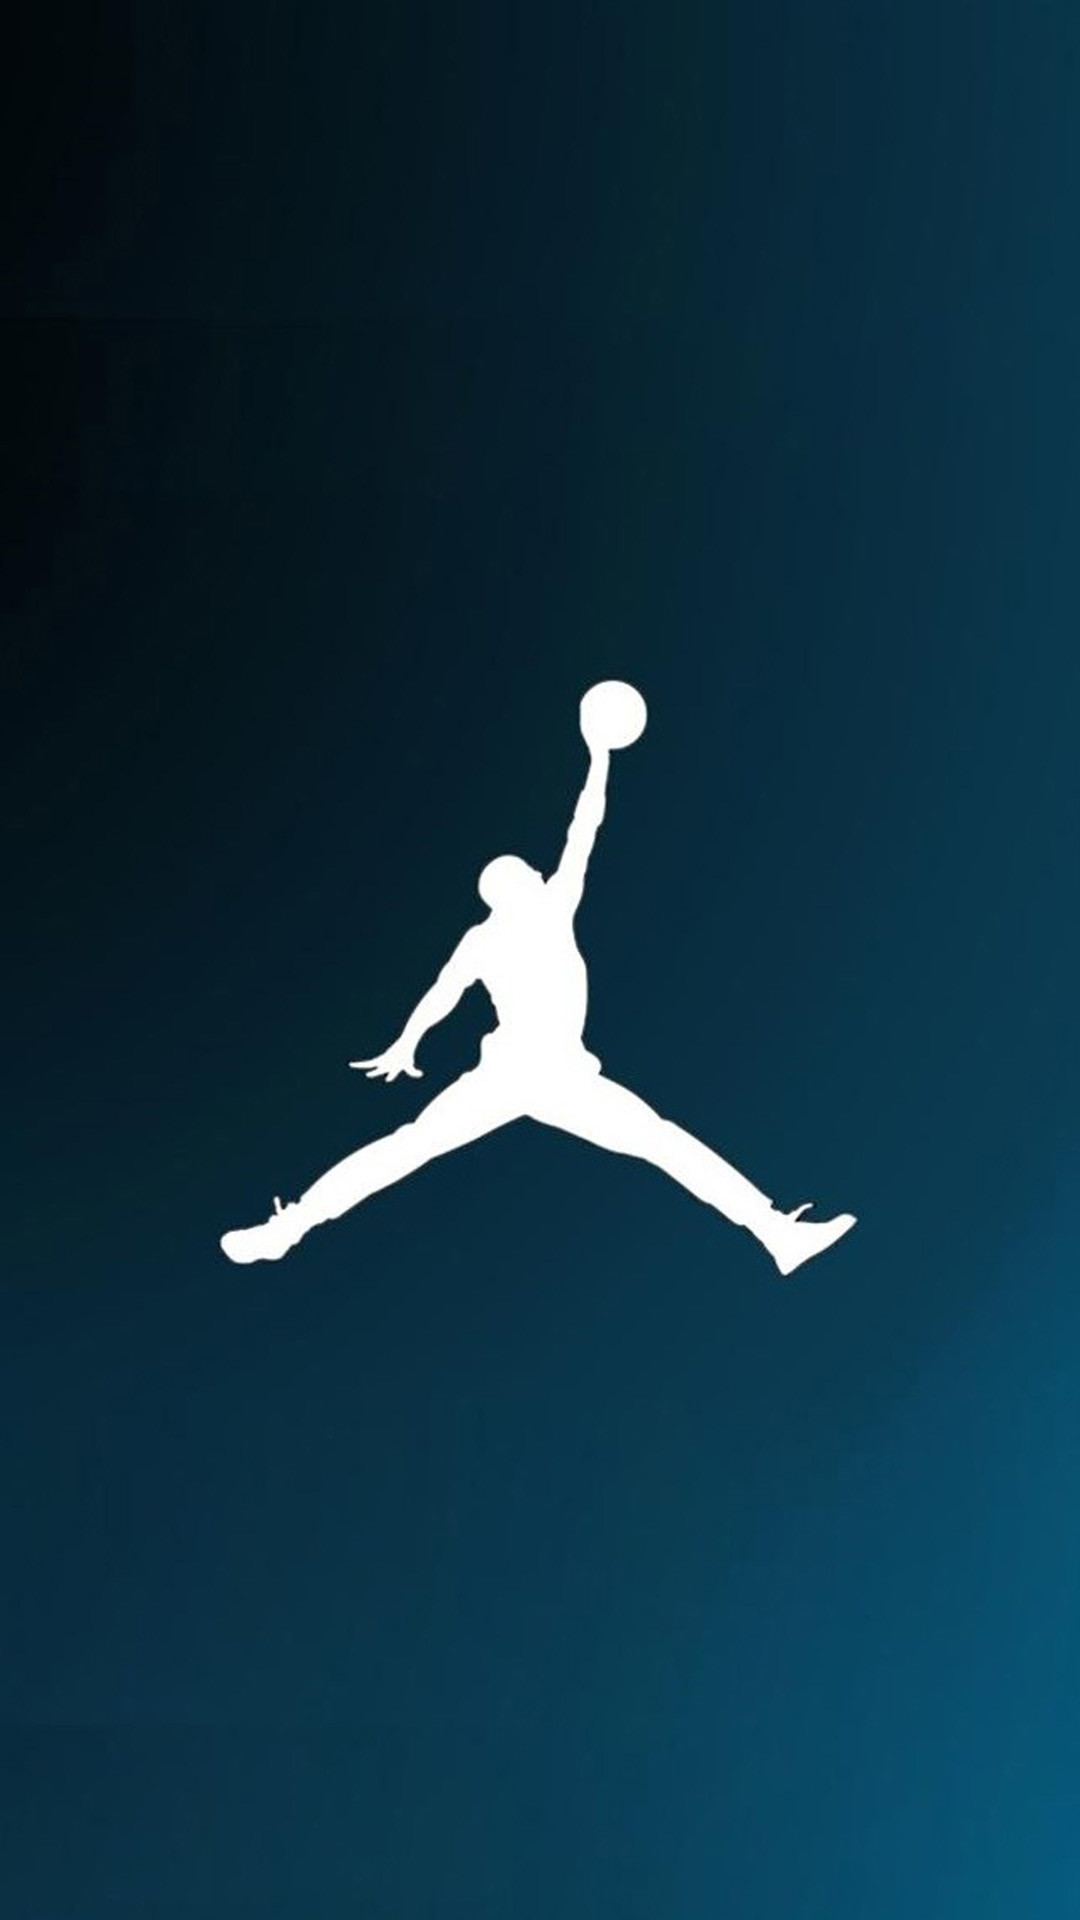 NBA Logo Wallpaper 1